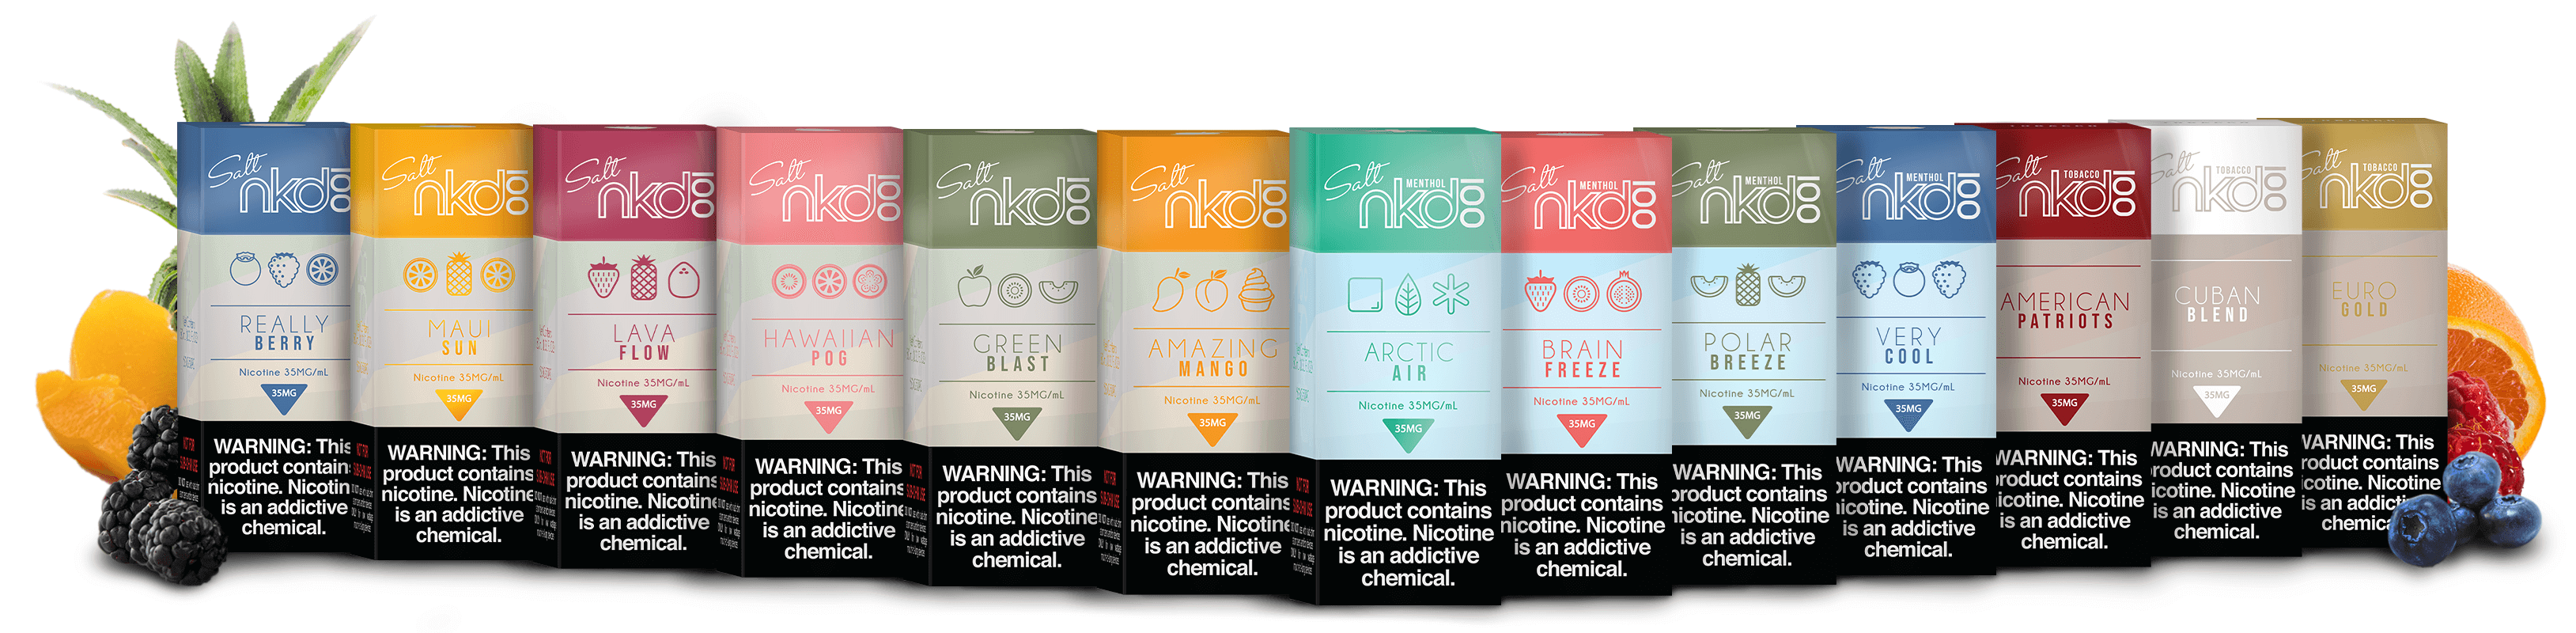 Naked 100 E-Liquids   Naked 100 Official Site